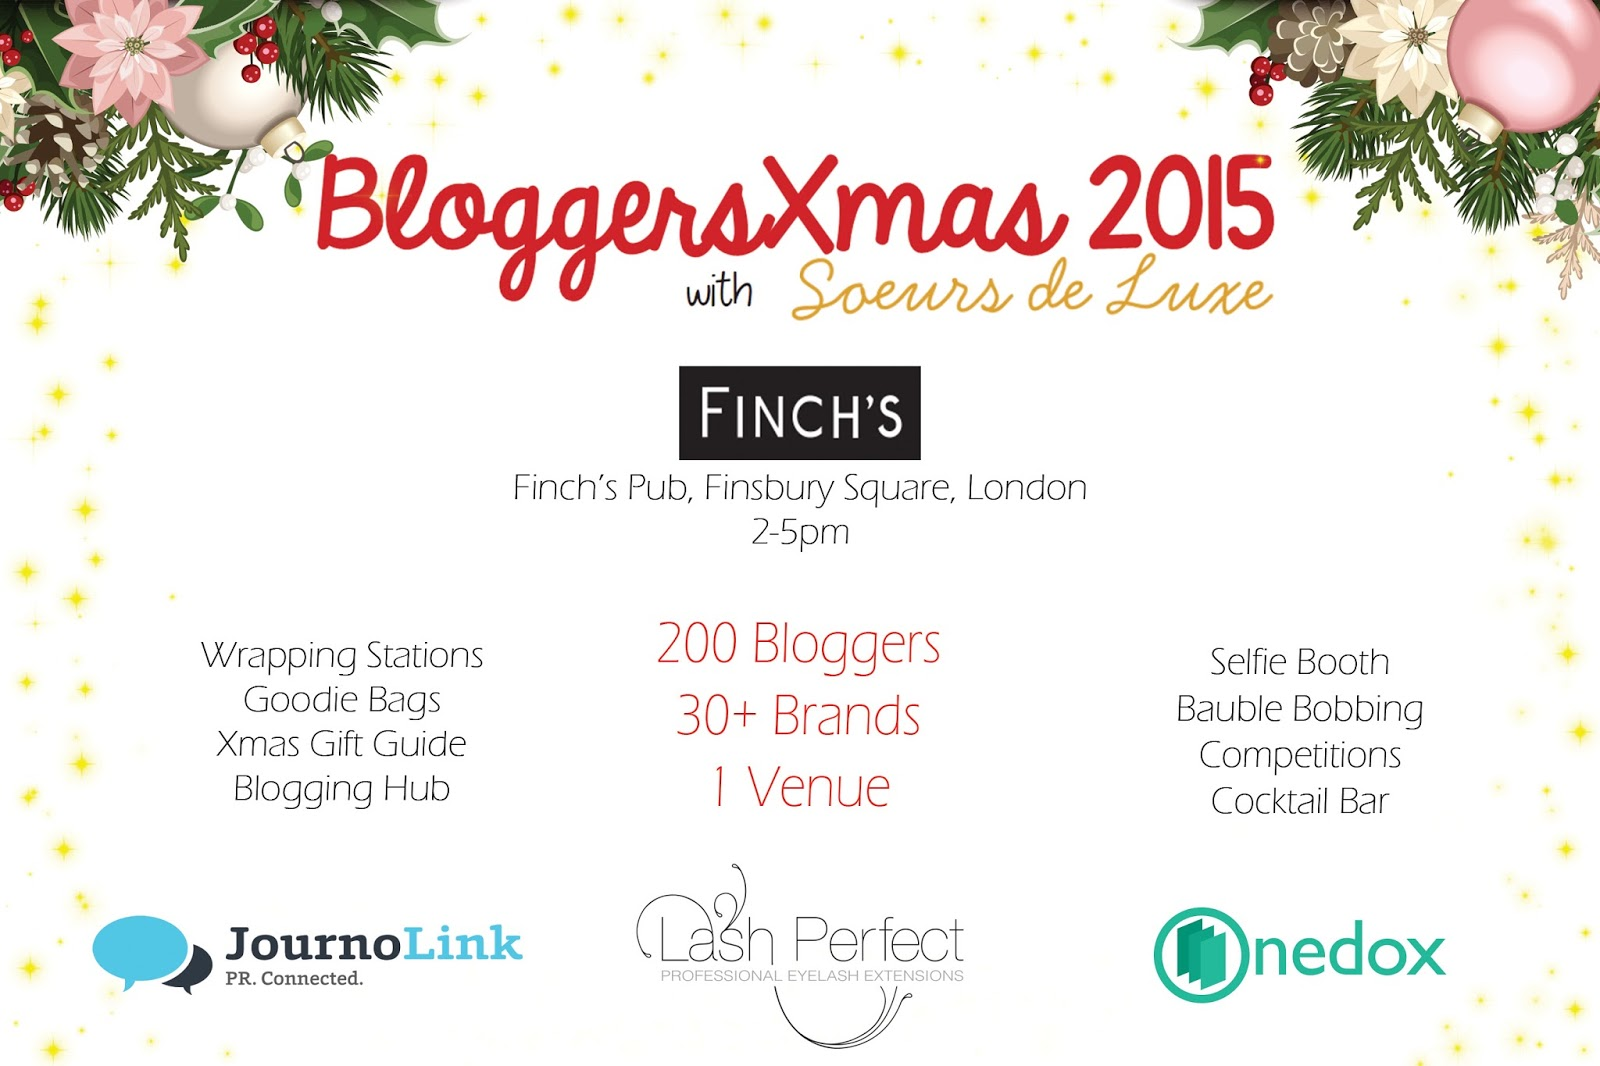 bloggersxmas 2015 information soeursdeluxe journolink lash perfect onedox bloggers event london